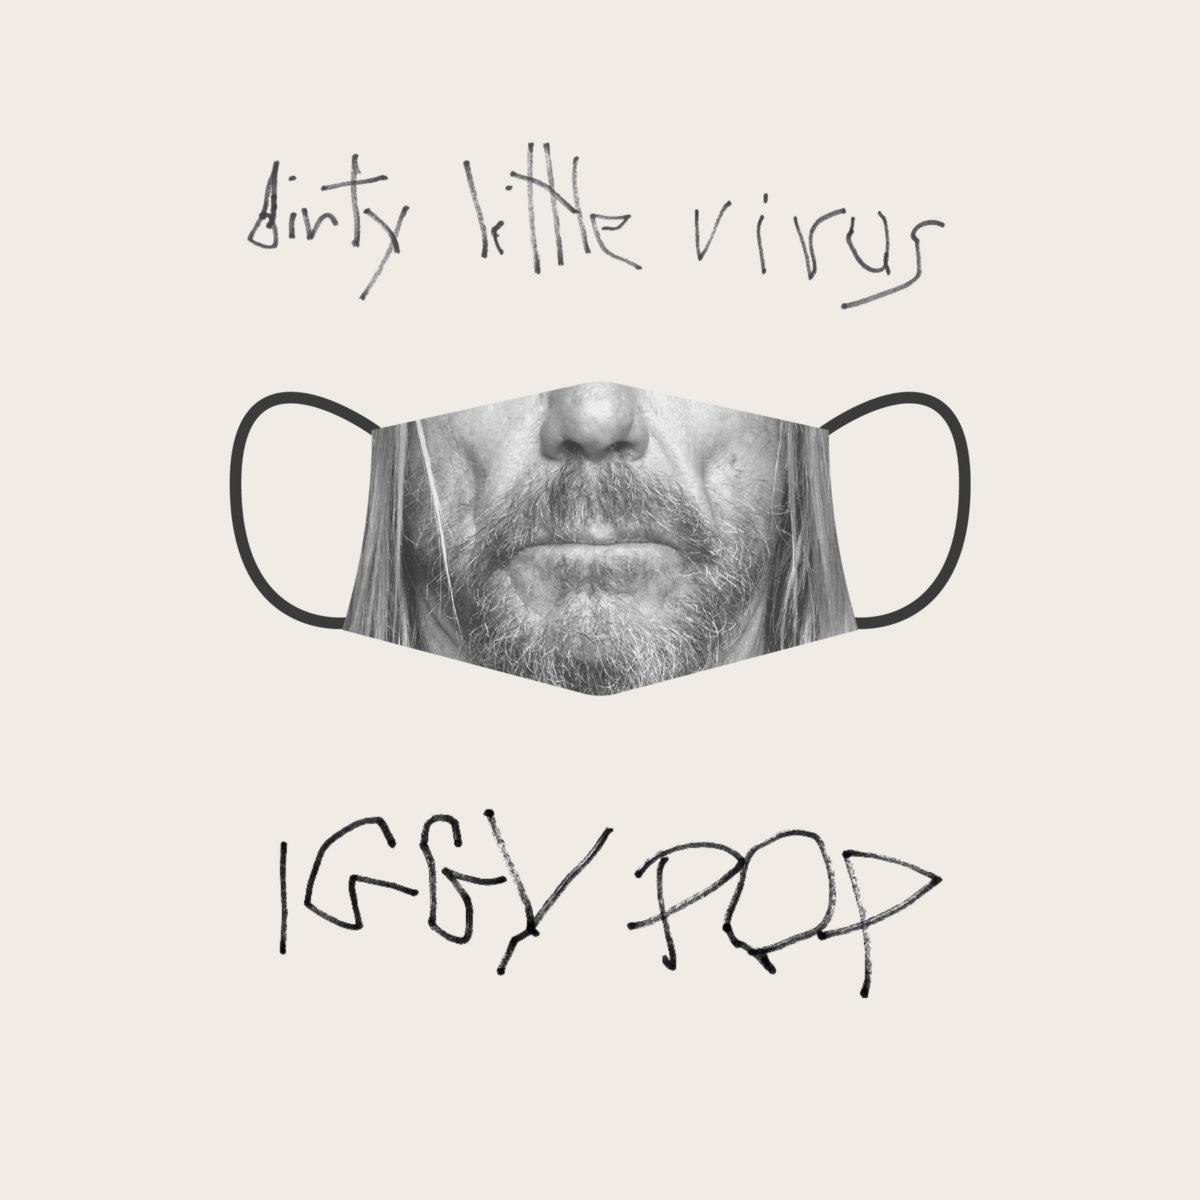 'Dirty little virus' de Iggy Pop